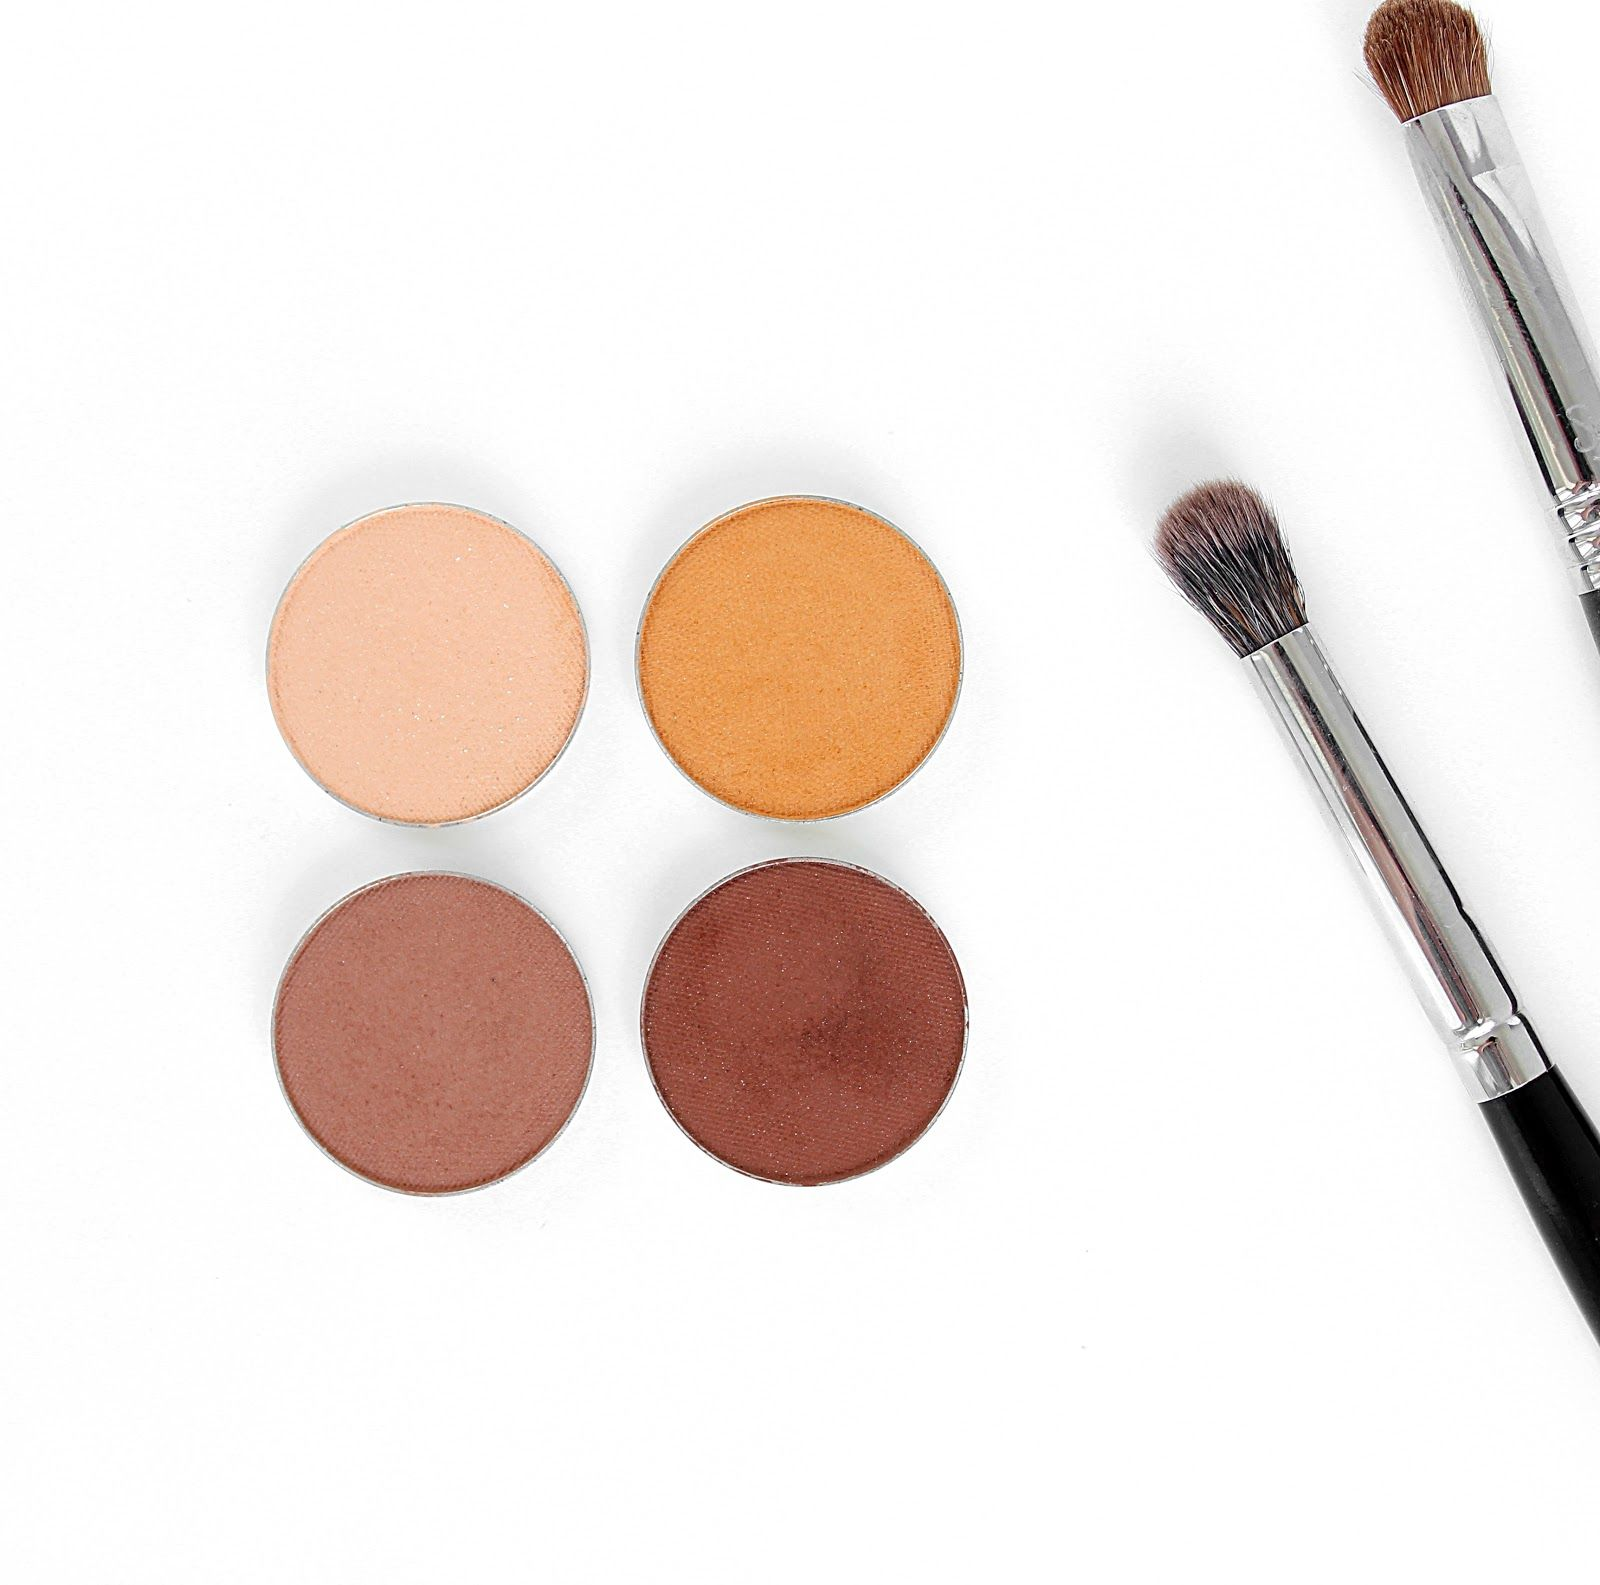 Makeup Geek Eye Shadow Quads Warm Tones Makeup geek